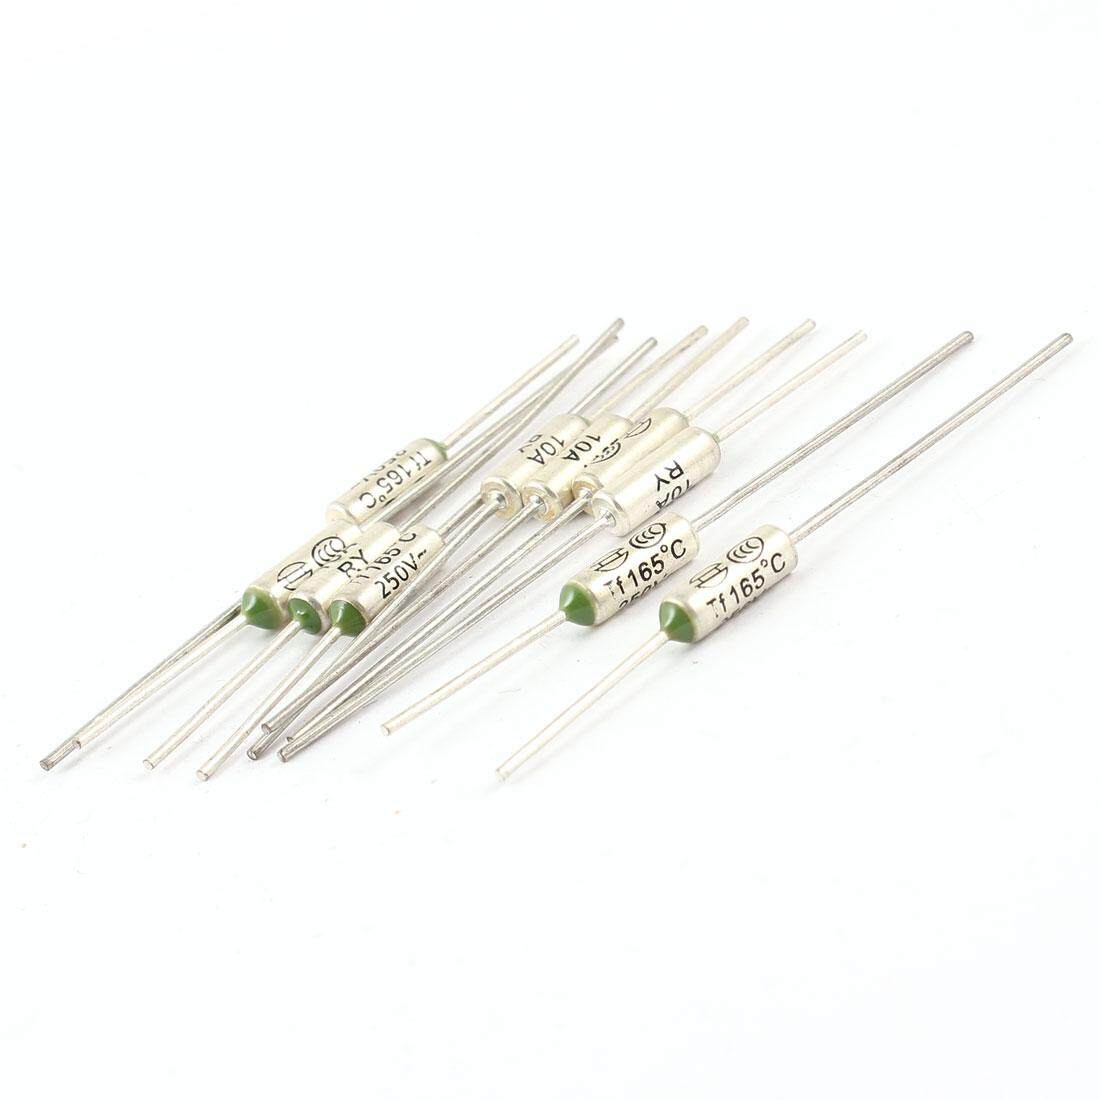 Sell Axa Thermal Protection Cheapest Best Quality My Store 10pcs Circuit Cut Off Temperature Cutoffs Fuse 240c Ac 250v Aluminum 125c Degree 10amyr42 Myr 45